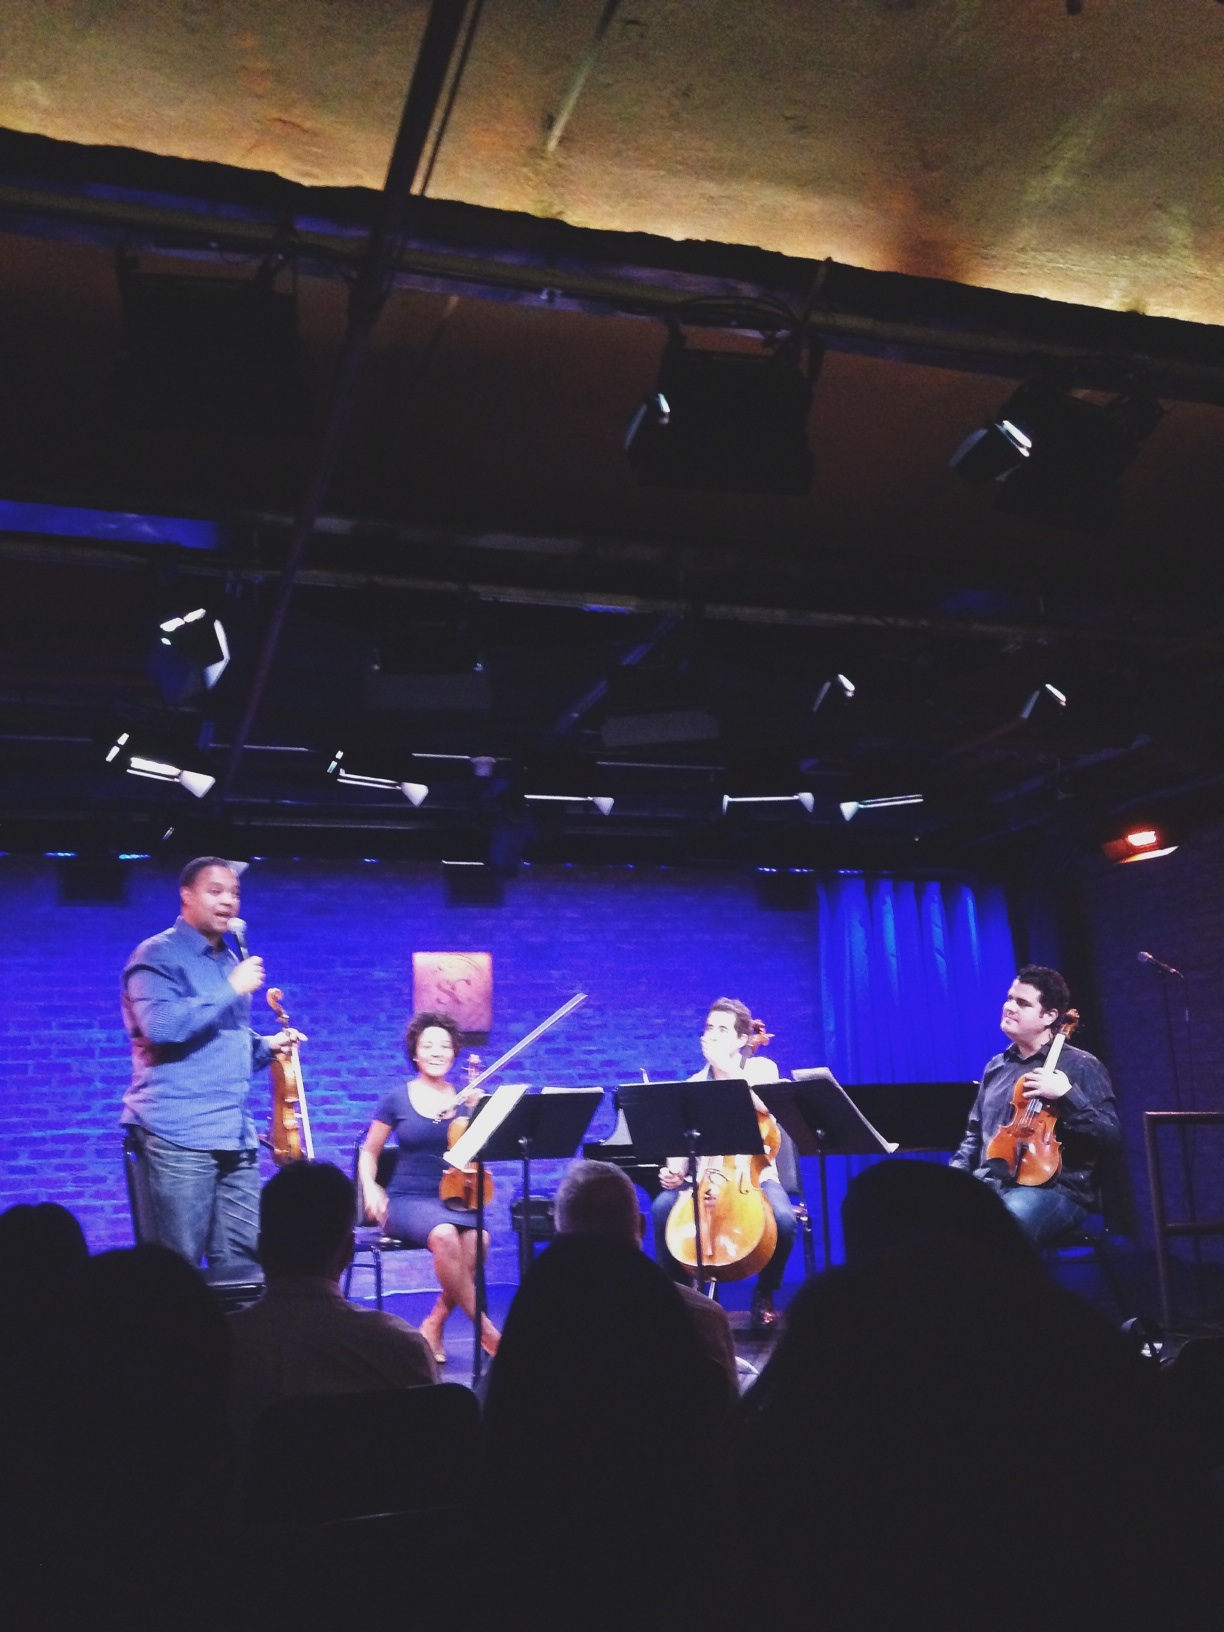 Our friend, Ilmar introducing his group  The Harlem Quartet  at their new album release.